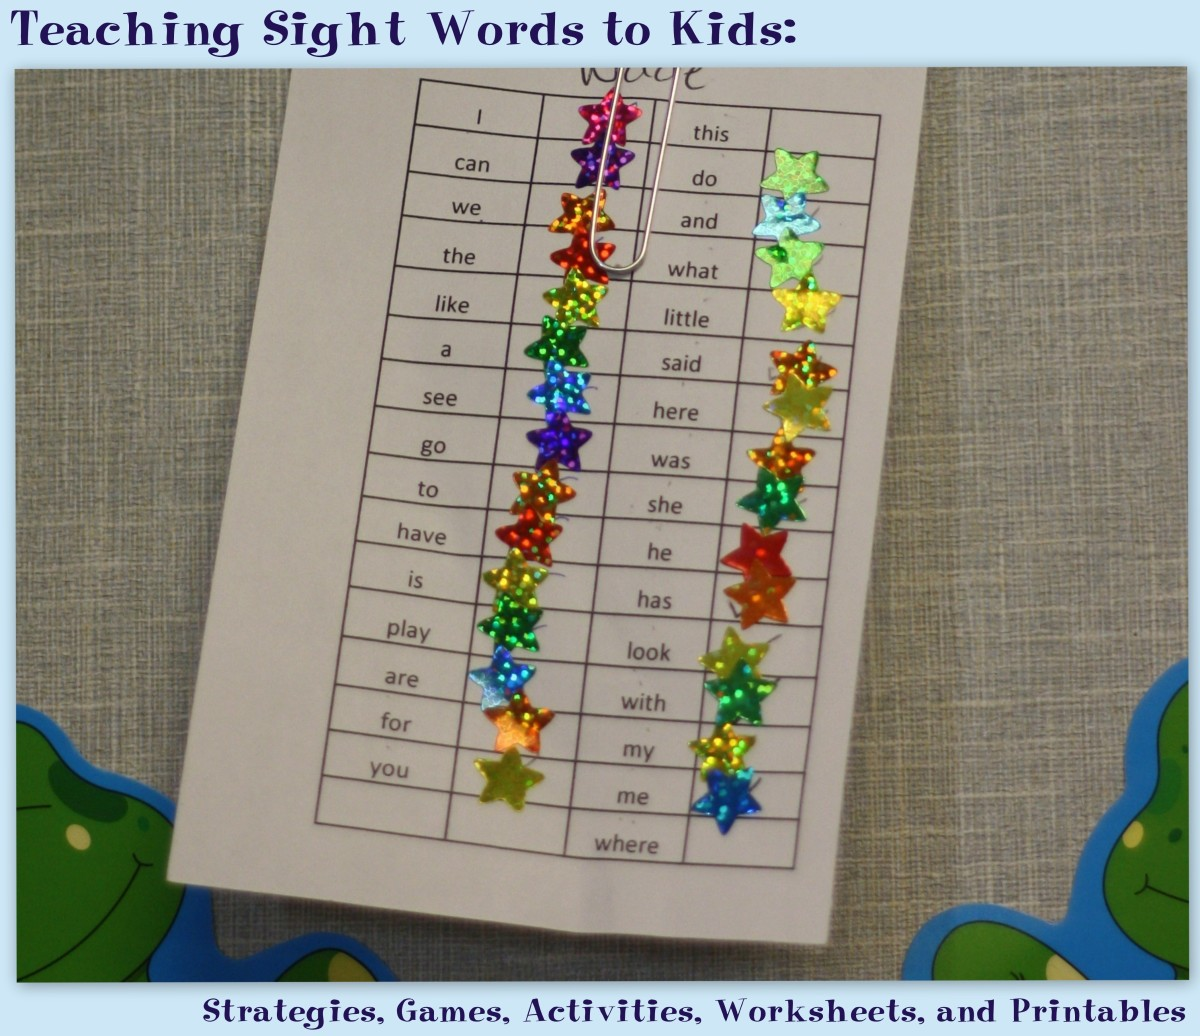 Teaching Sight Words To Kids Strategies Games